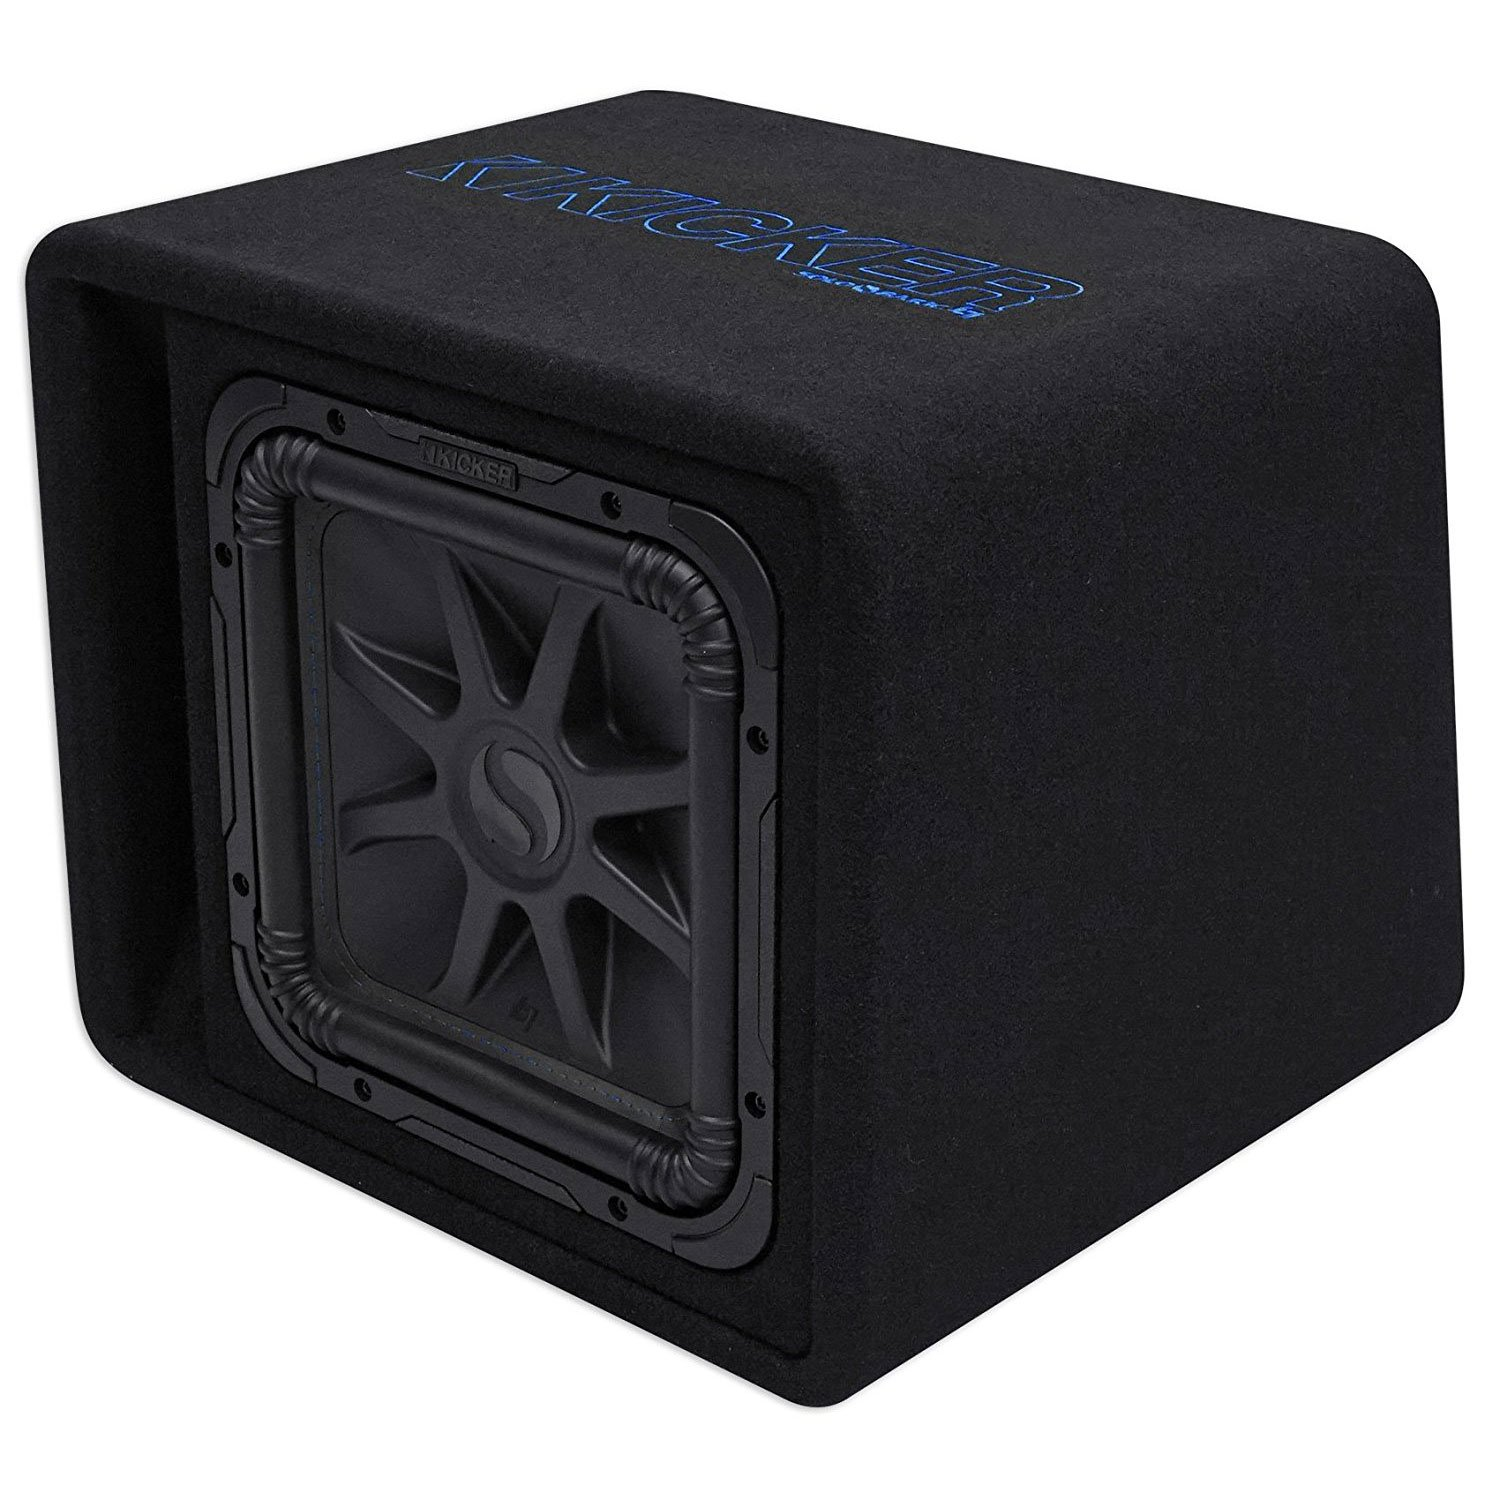 "Kicker 12"" 1500W Single Loaded Solo-Baric L7S 2 Ohm Subwoofer Enclosure"